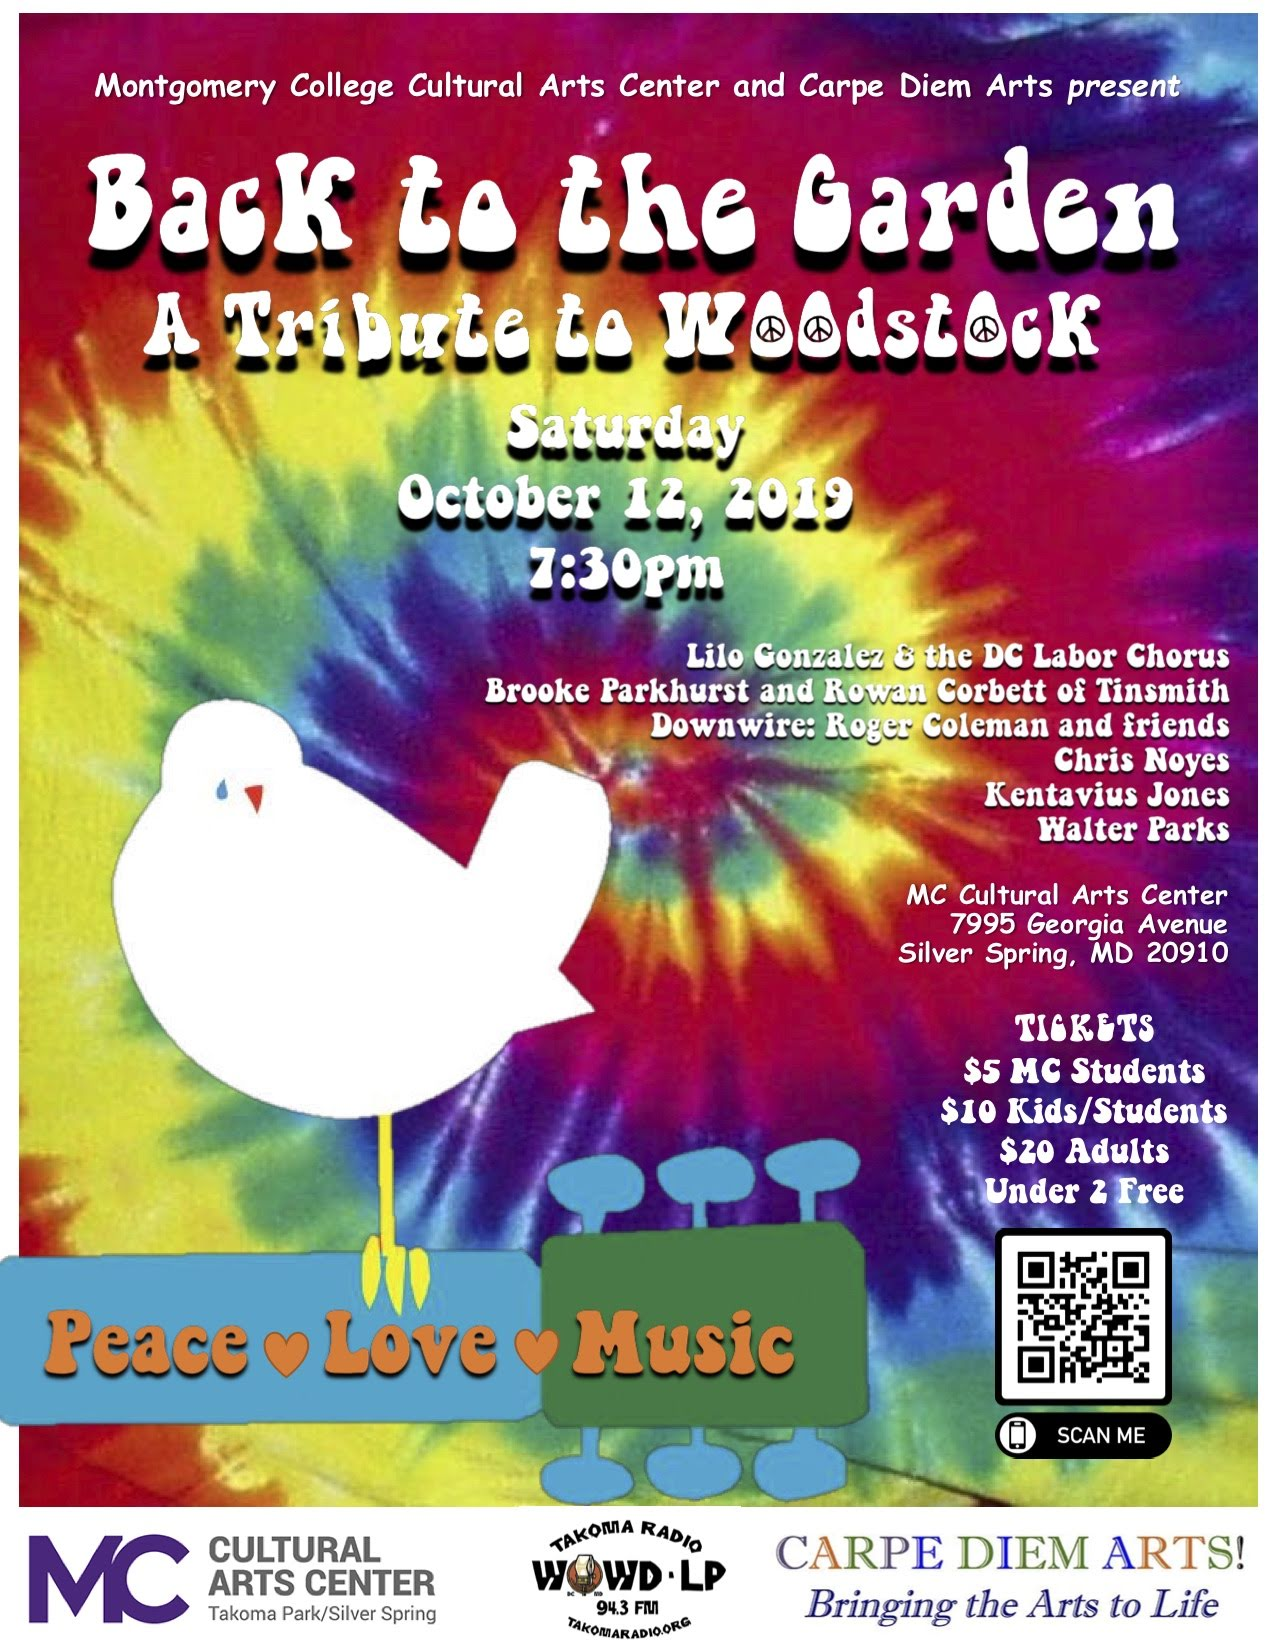 Back to the Garden: local musicians will be recreating the peace love and music of Woodstock in Silver Spring, 50 years after the original concert.